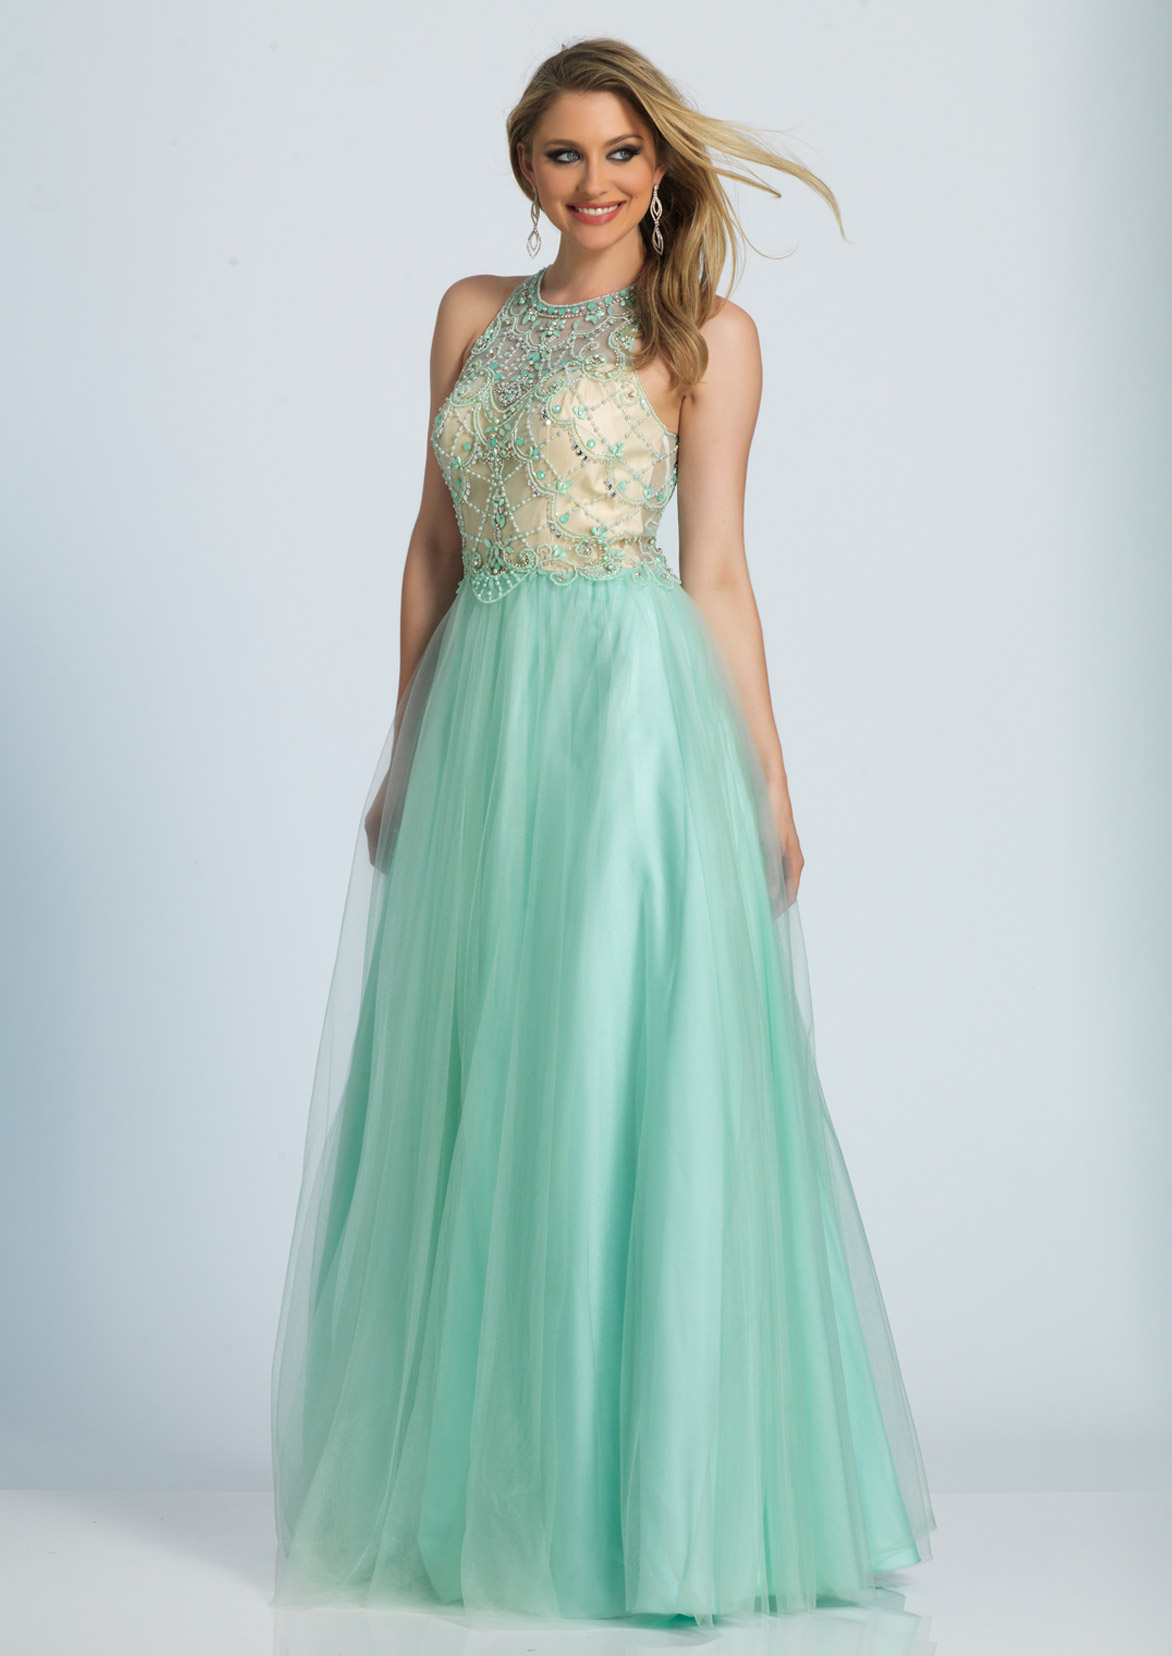 Excellent Omaha Prom Dresses Contemporary - Wedding Ideas ...